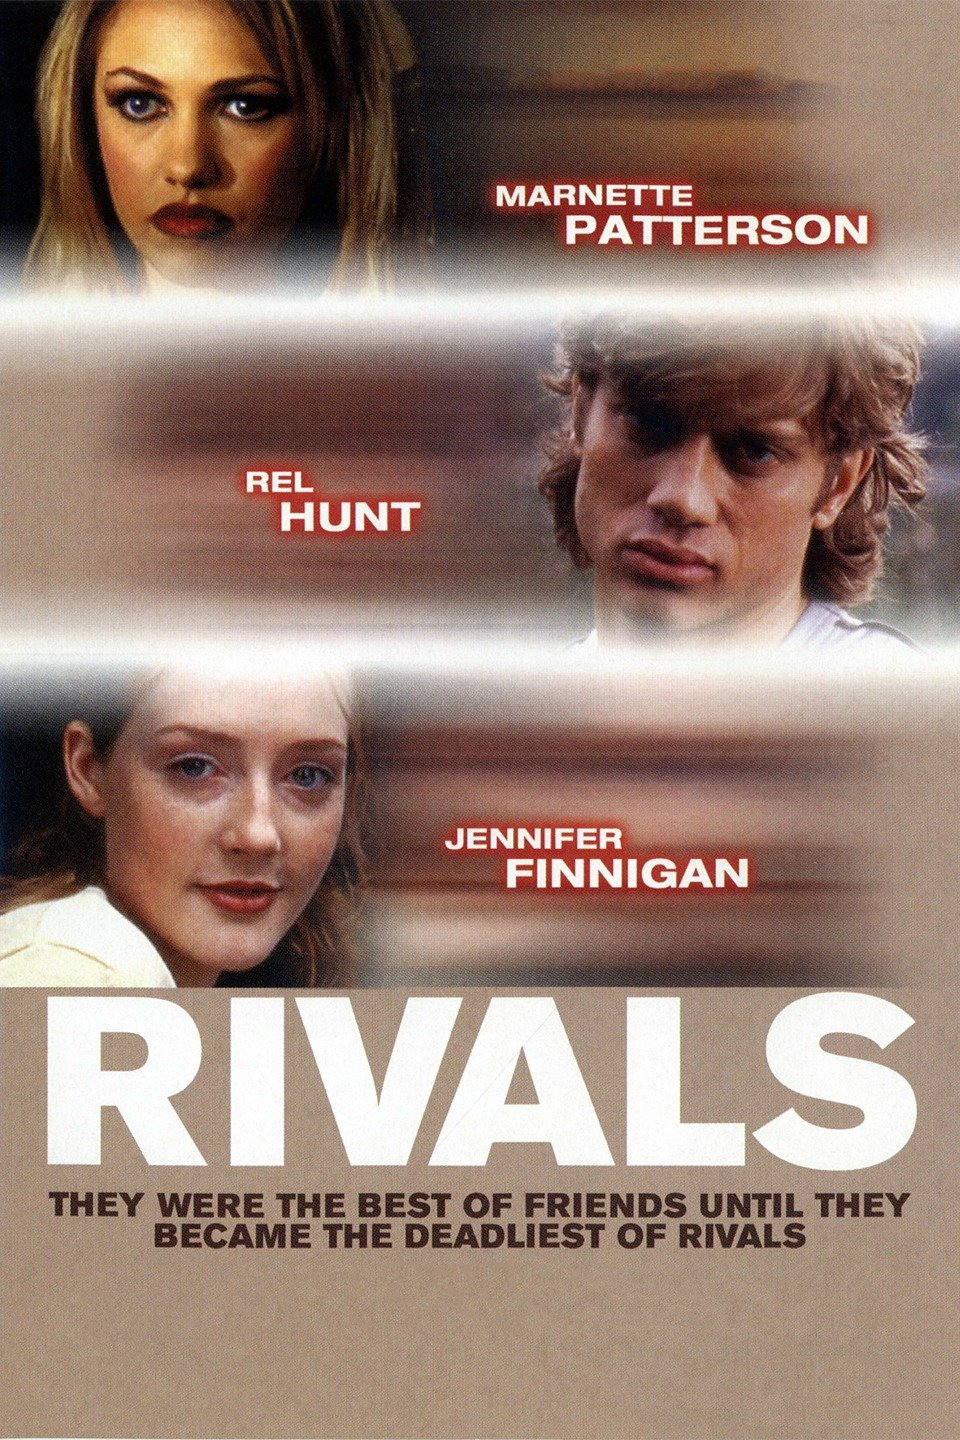 Rivals (The Stalking of Laurie Show) (2000)